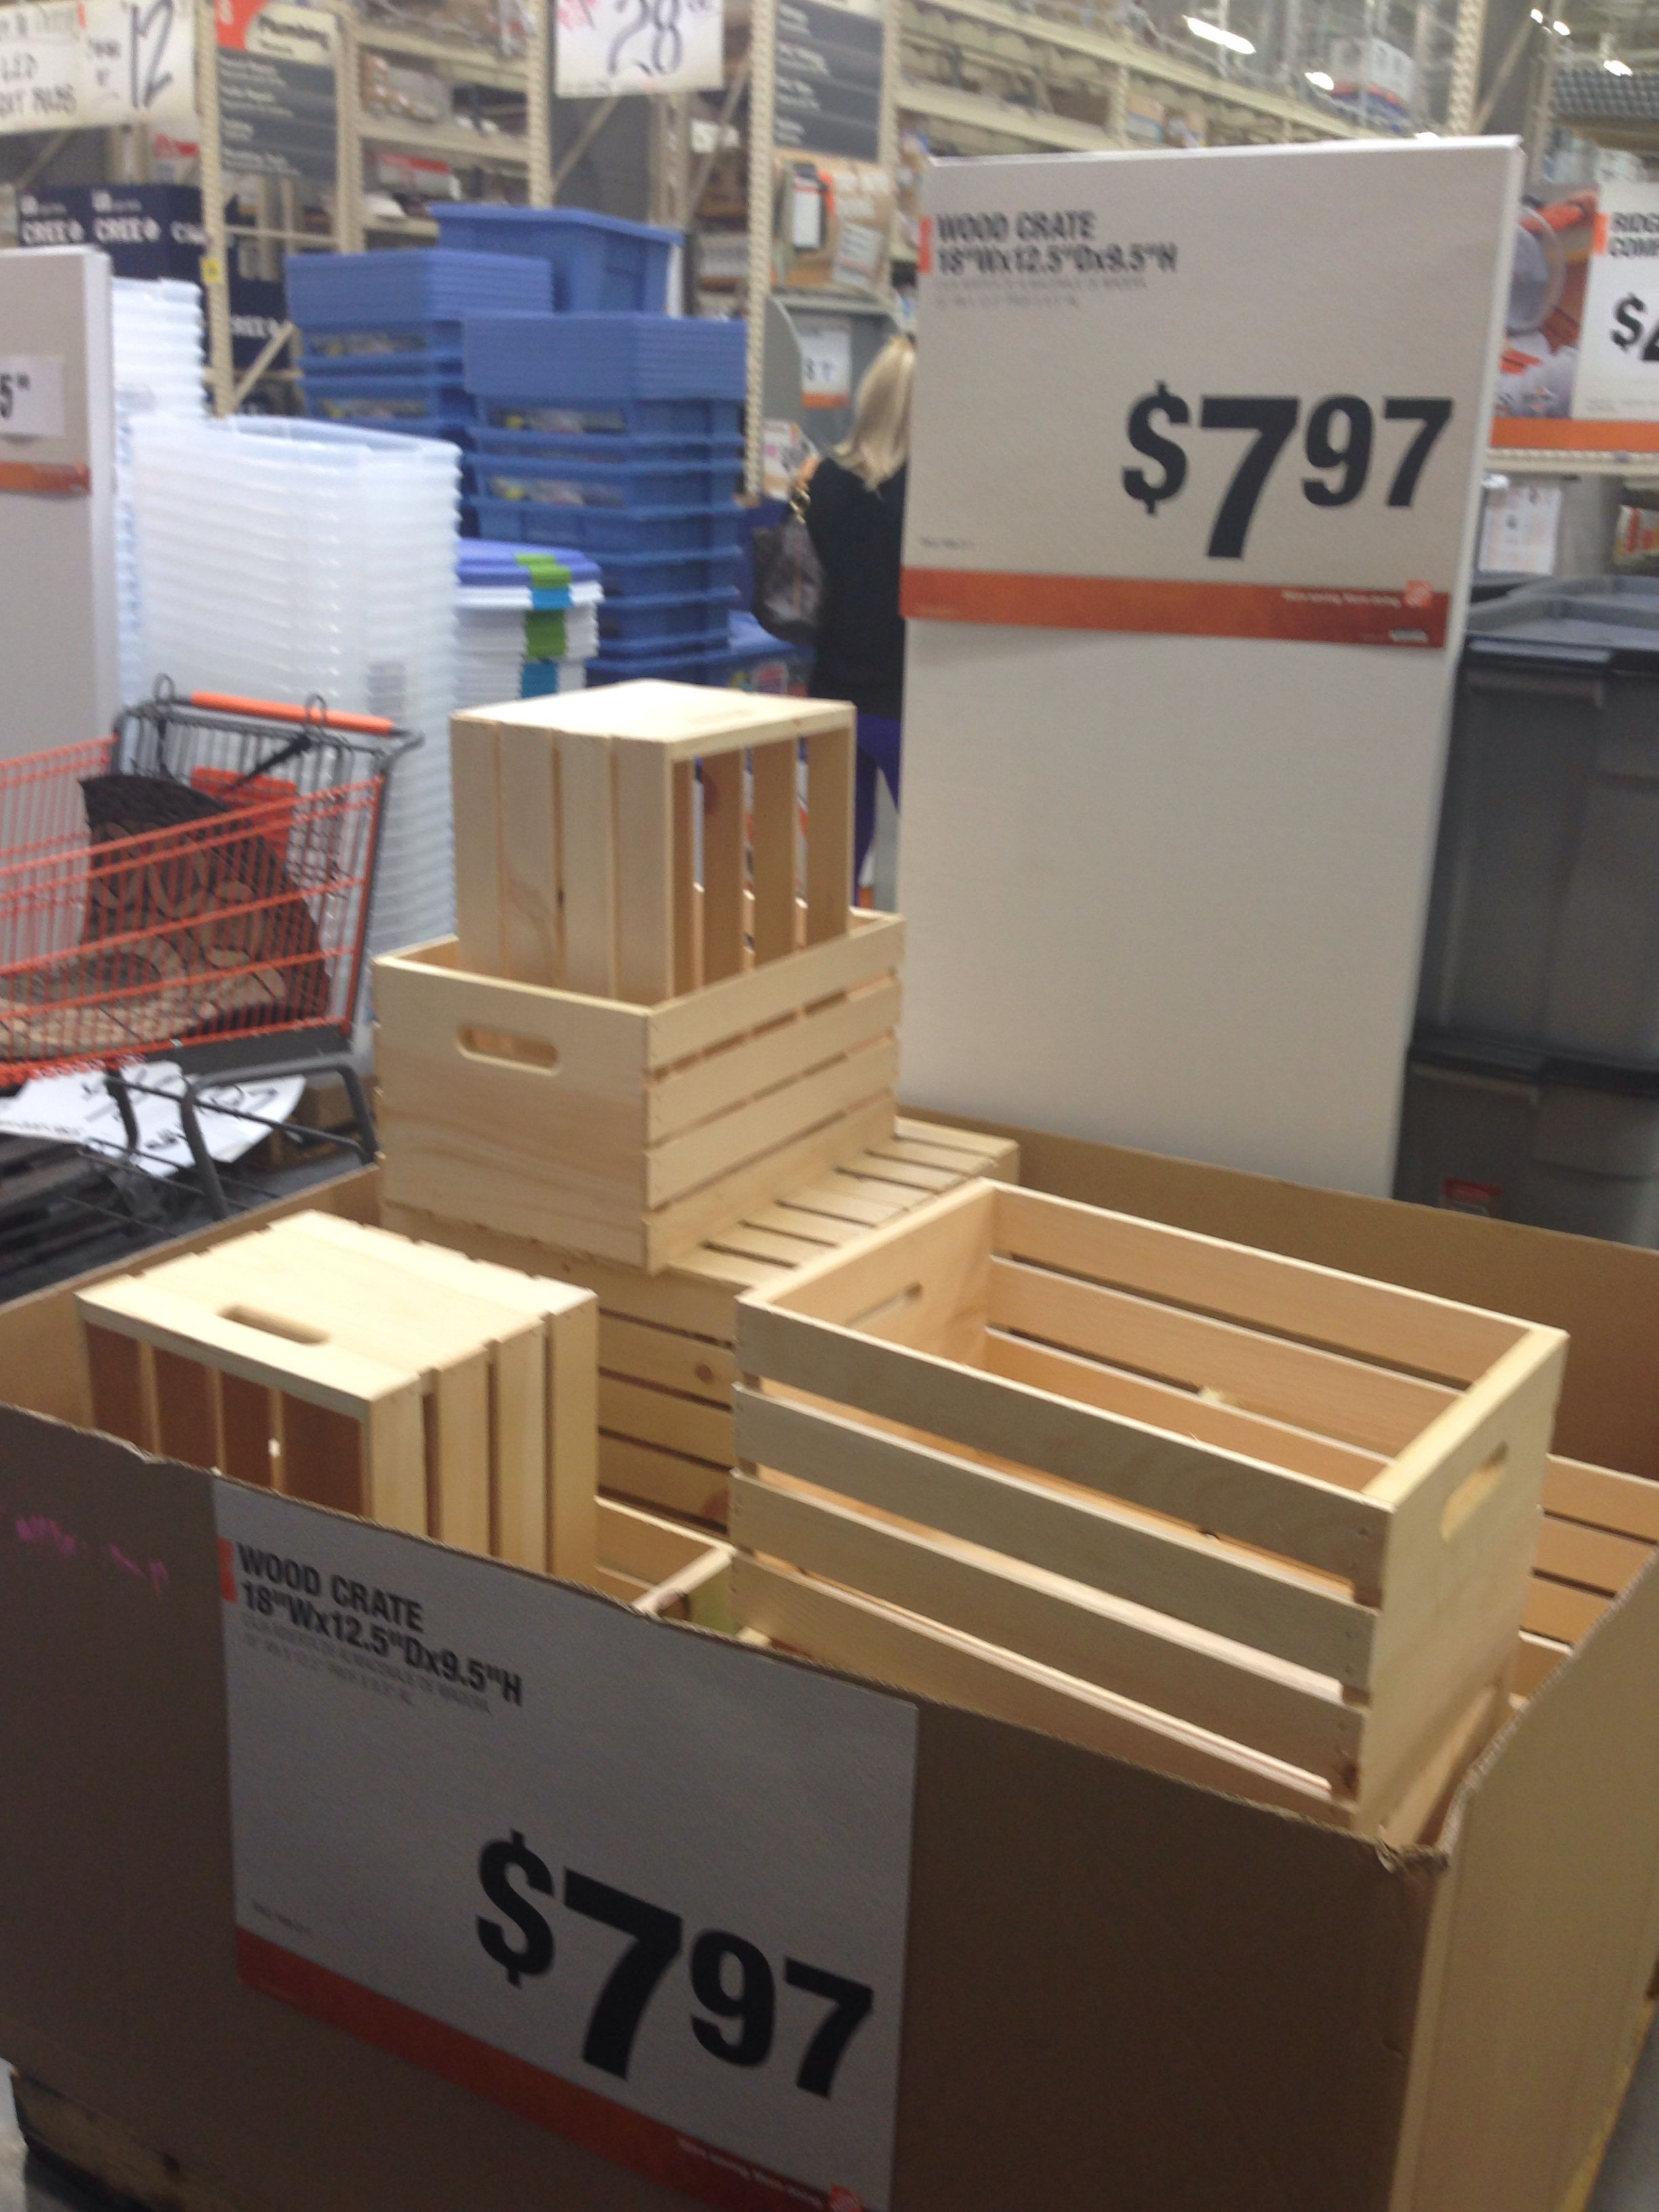 Cheap Wooden Crates Instead Of Michaels Or Joann 39s Buy Wooden Crates At Home